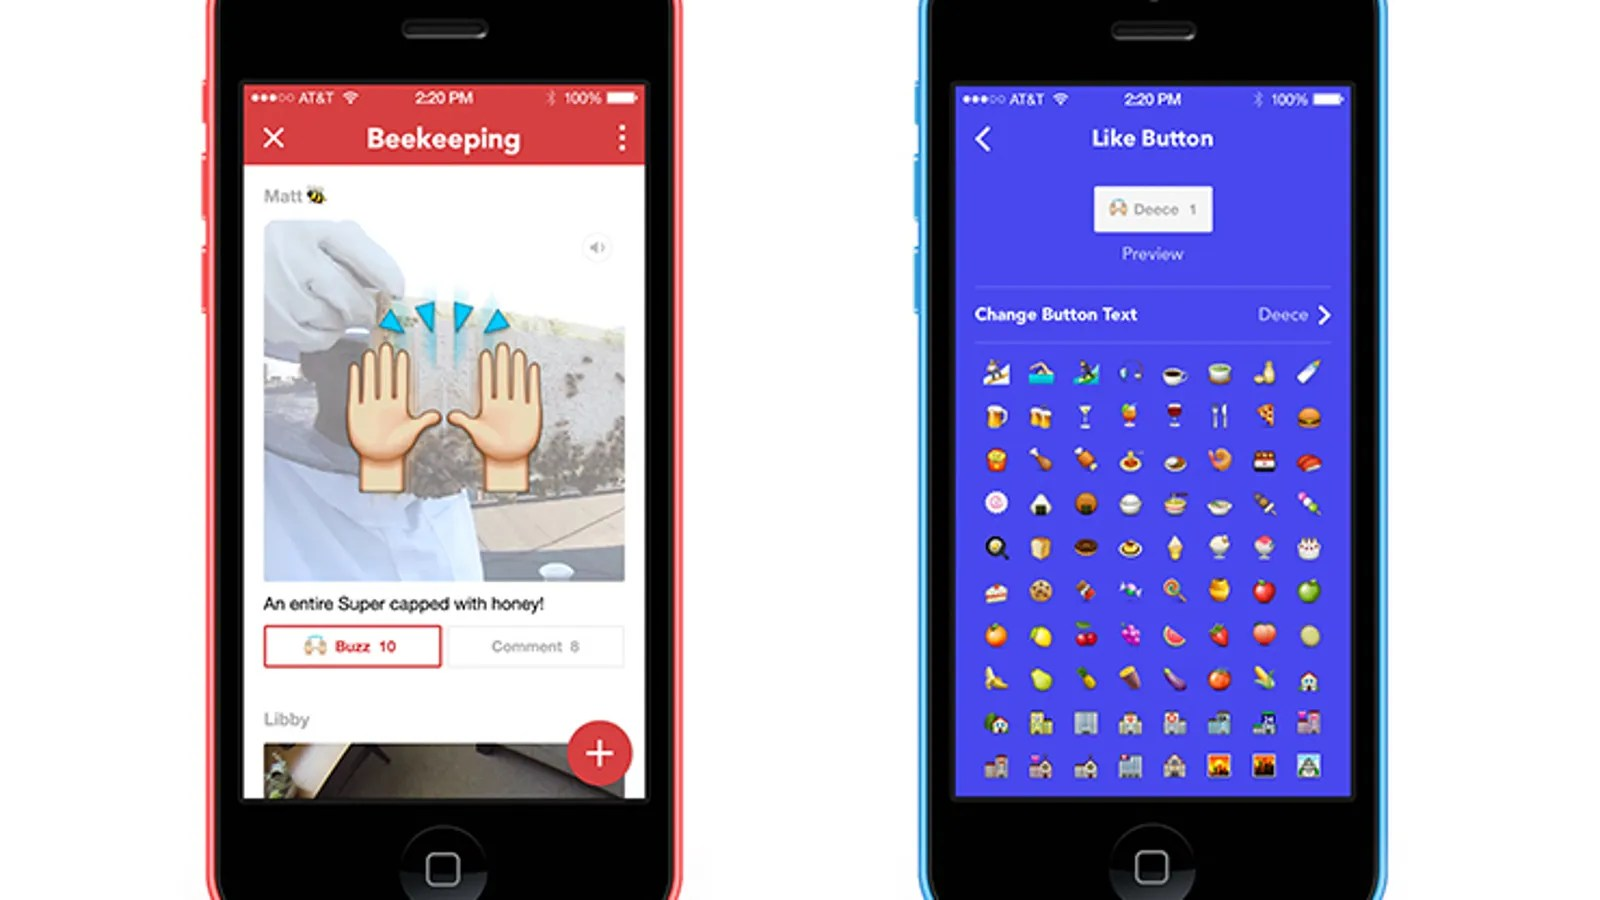 Facebook S New Rooms App Bring Mini Message Boards To Your Phone